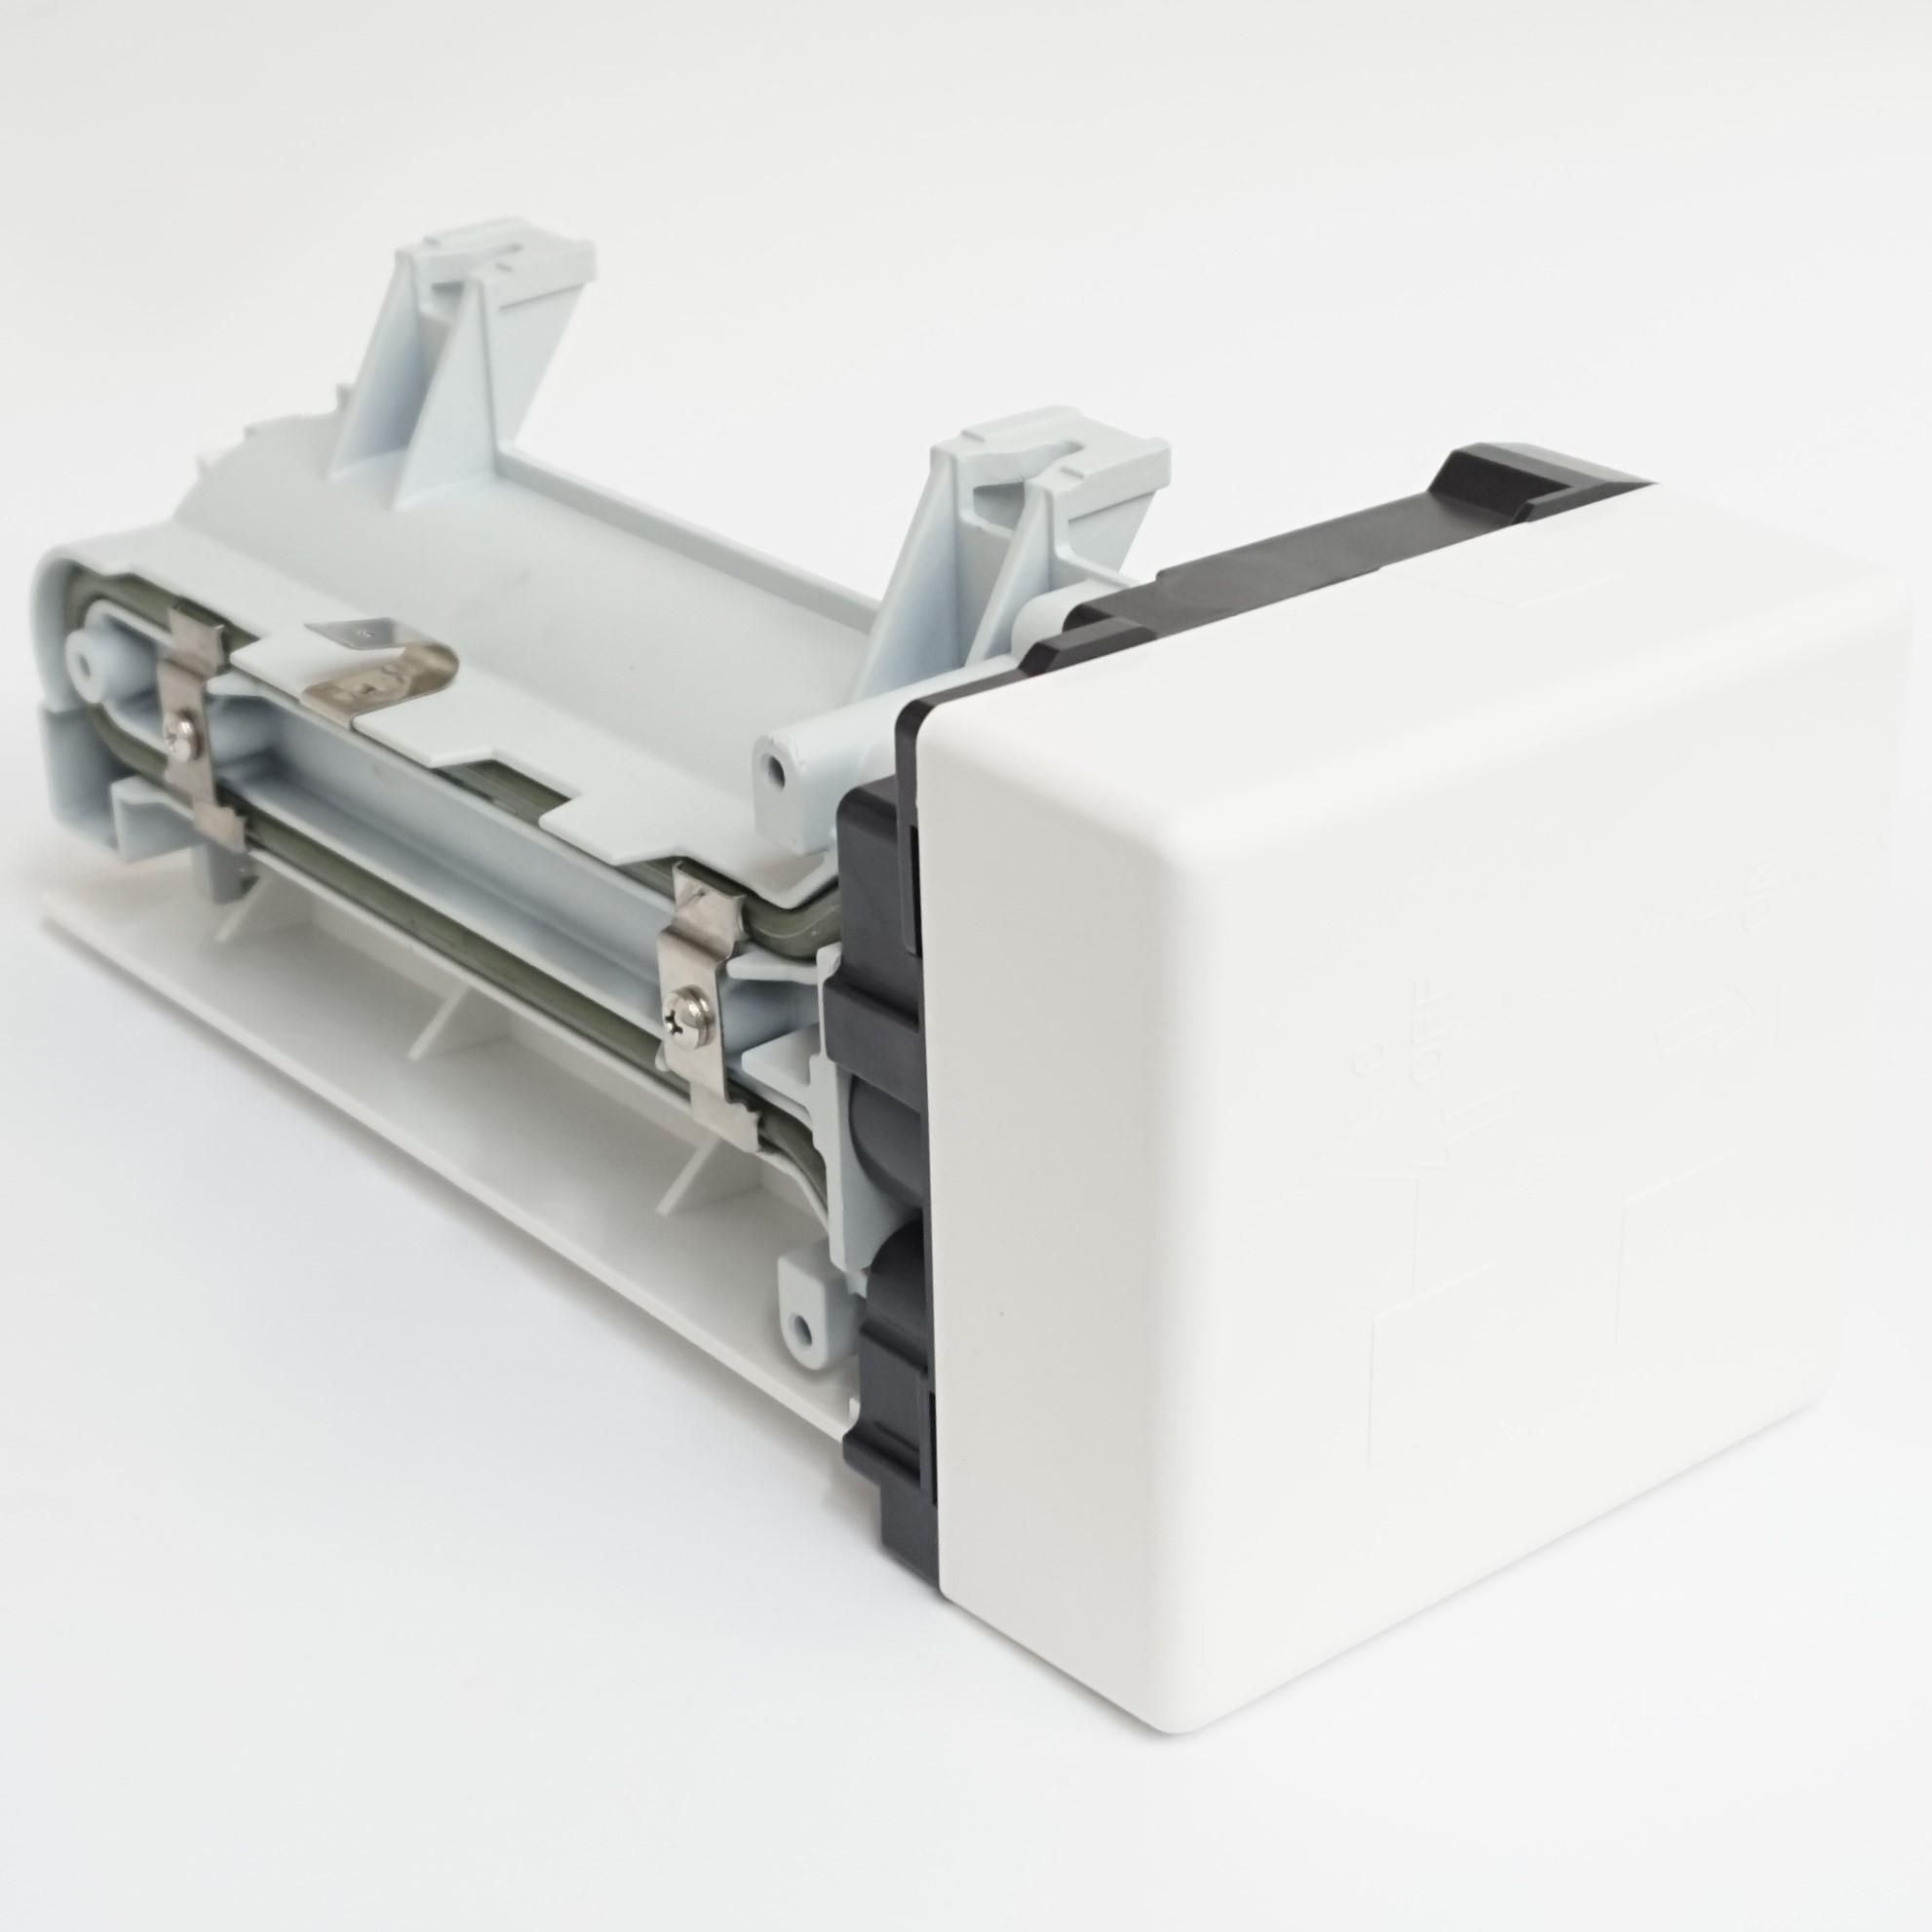 Supco Icemaker Assembly fits Whirlpool, AP6019085, PS11752389, WPW10300022